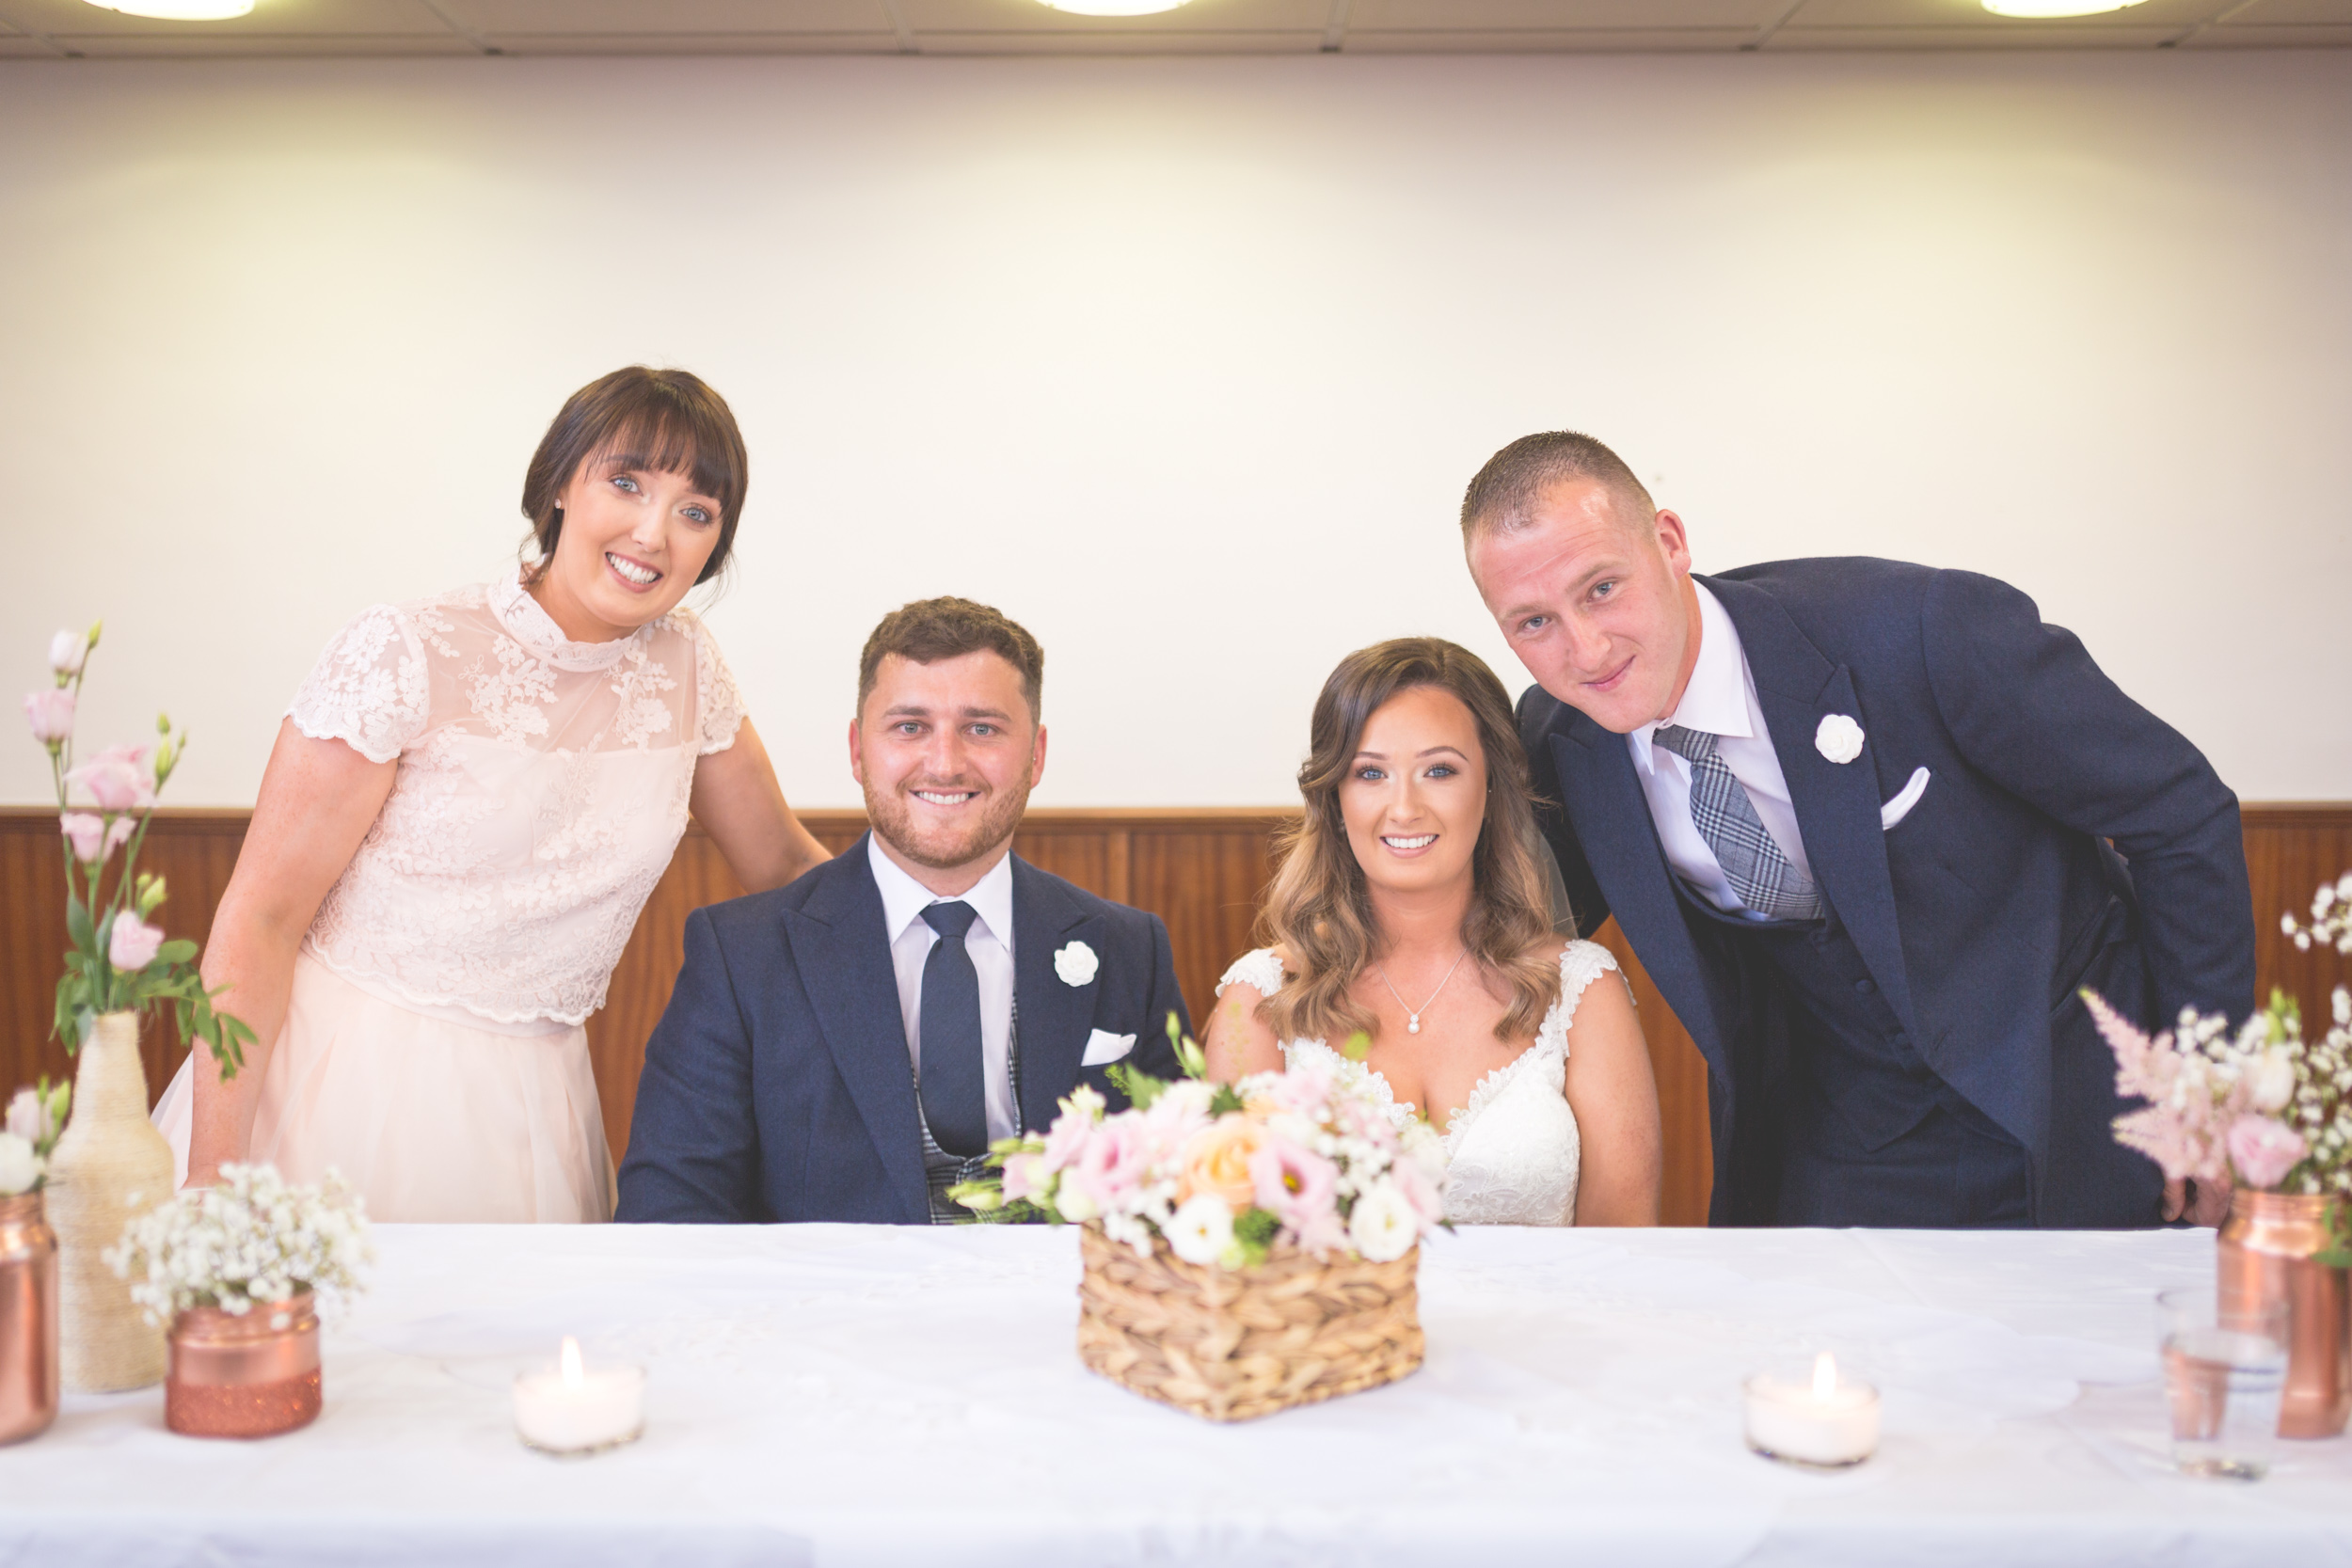 Brian McEwan | Northern Ireland Wedding Photographer | Rebecca & Michael | Ceremony-86.jpg